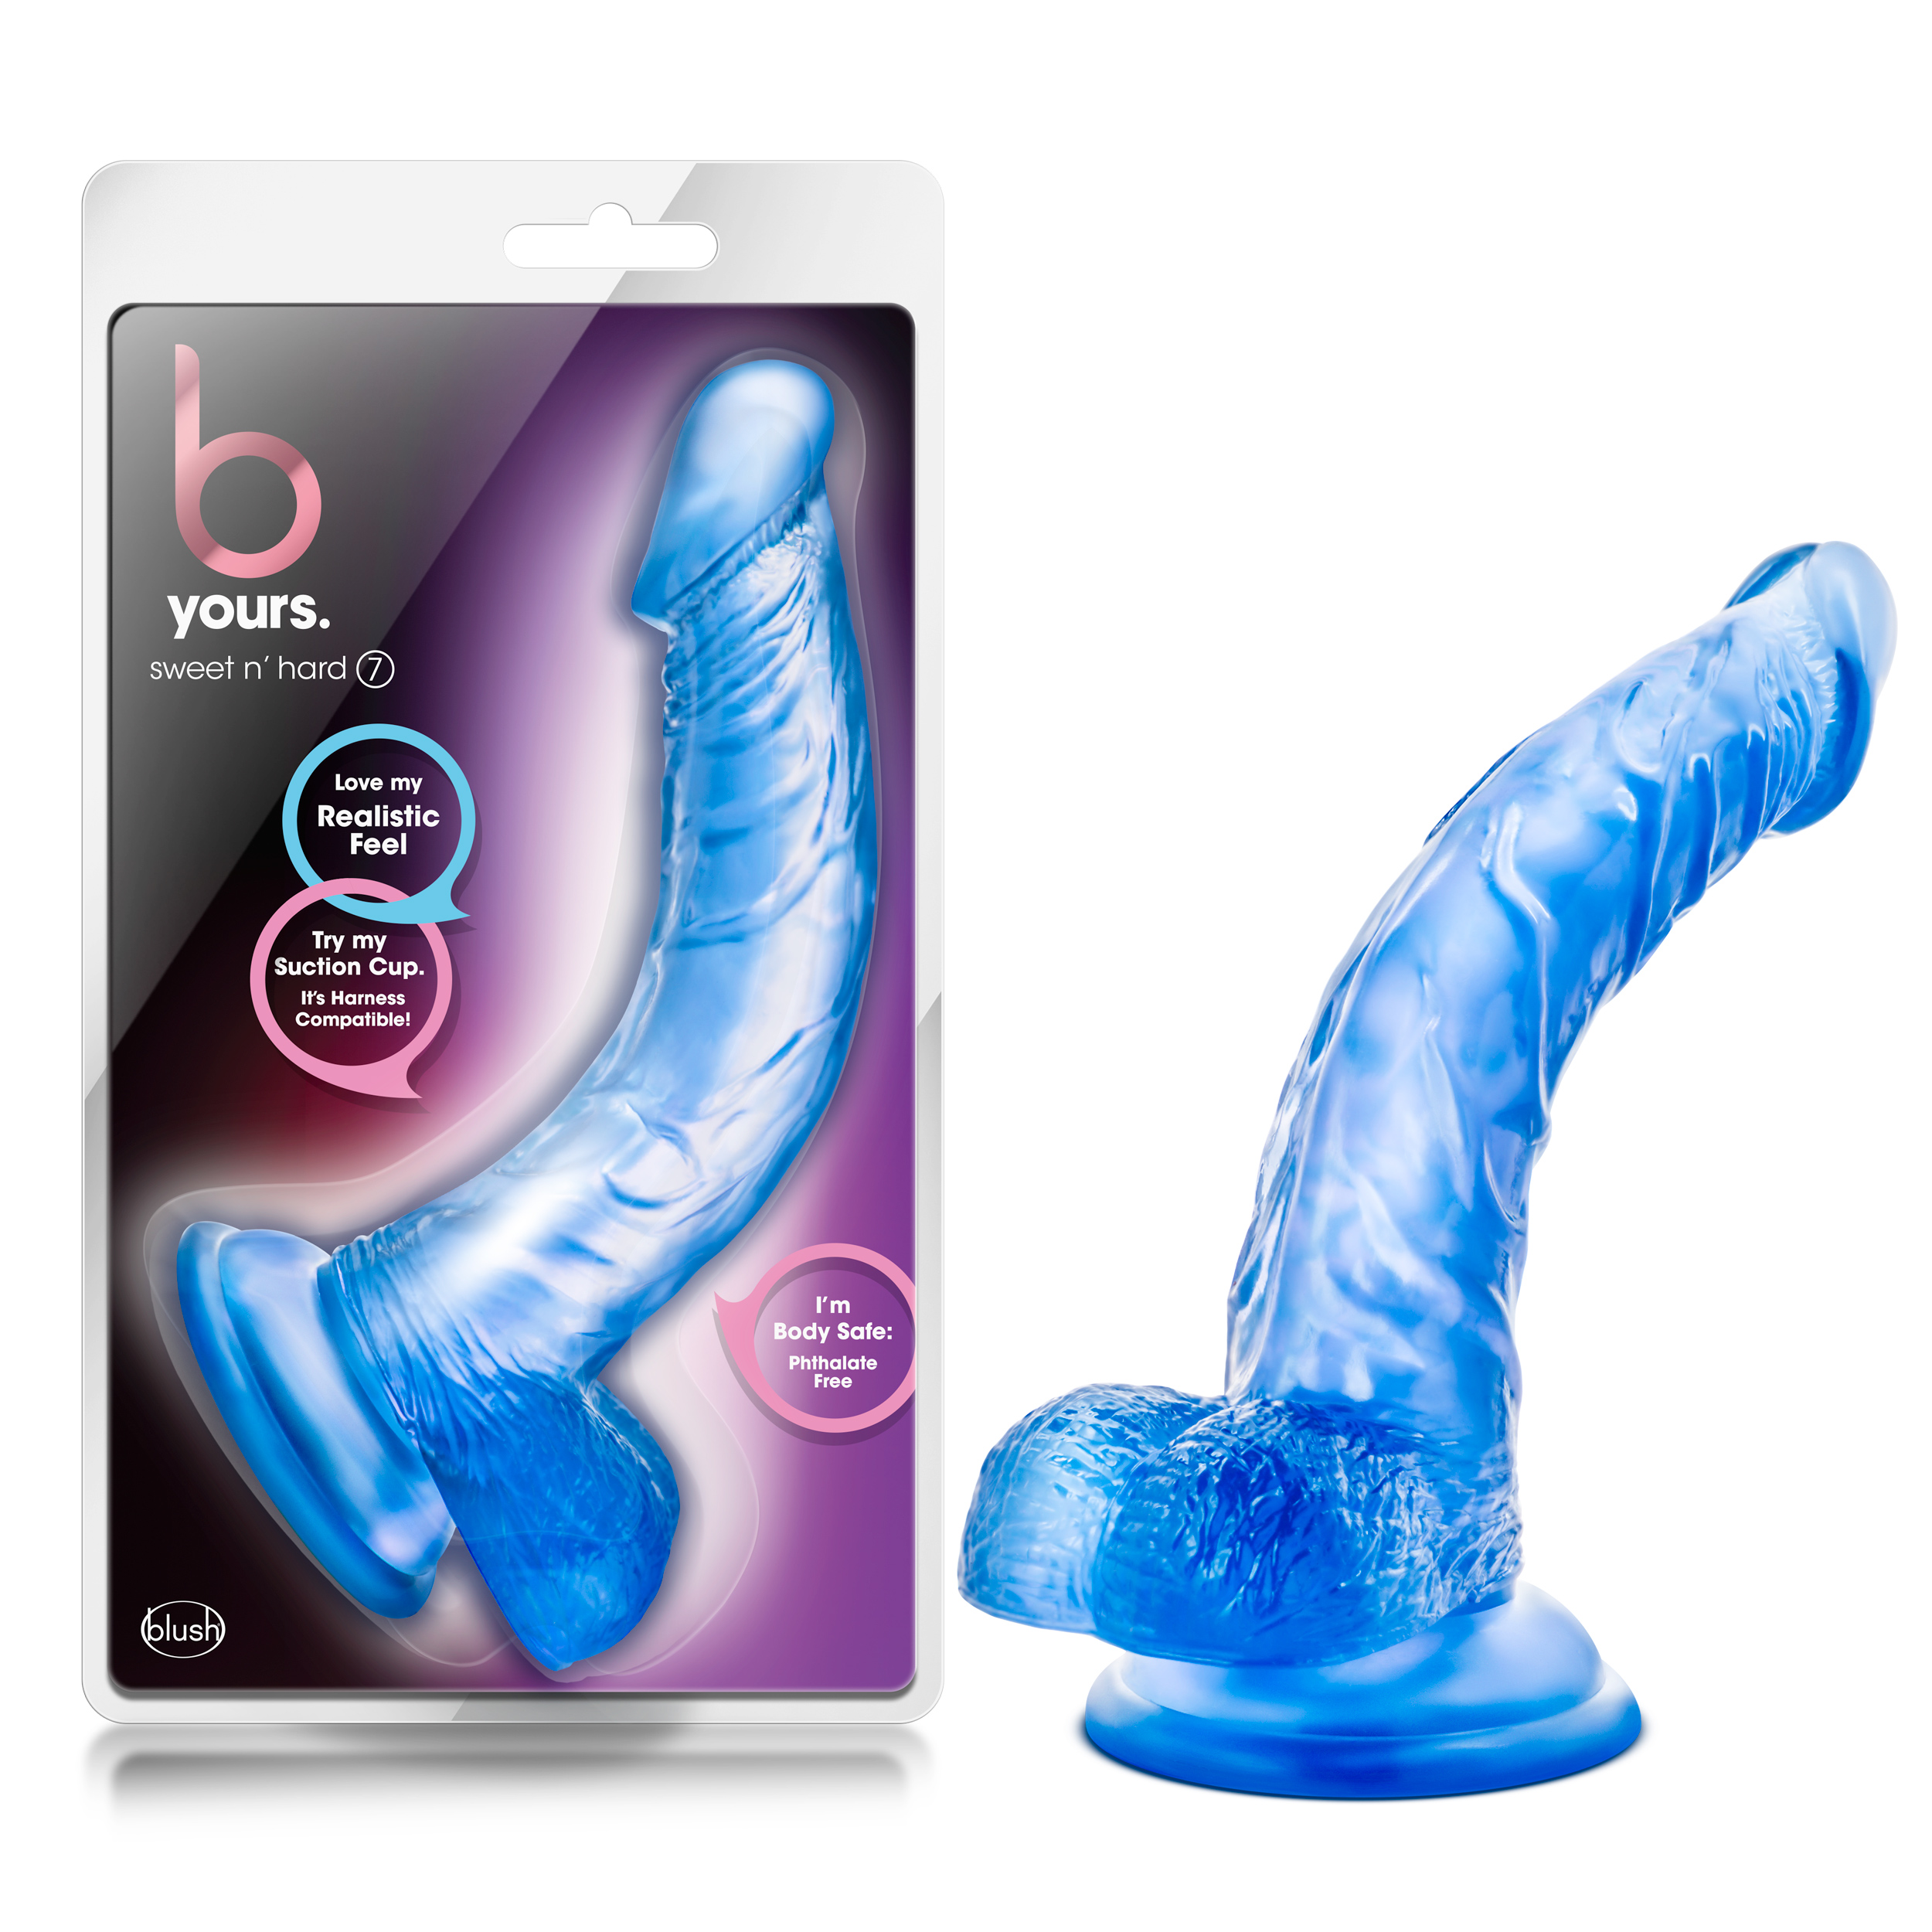 B Yours - Sweet n' Hard 7 - Blue